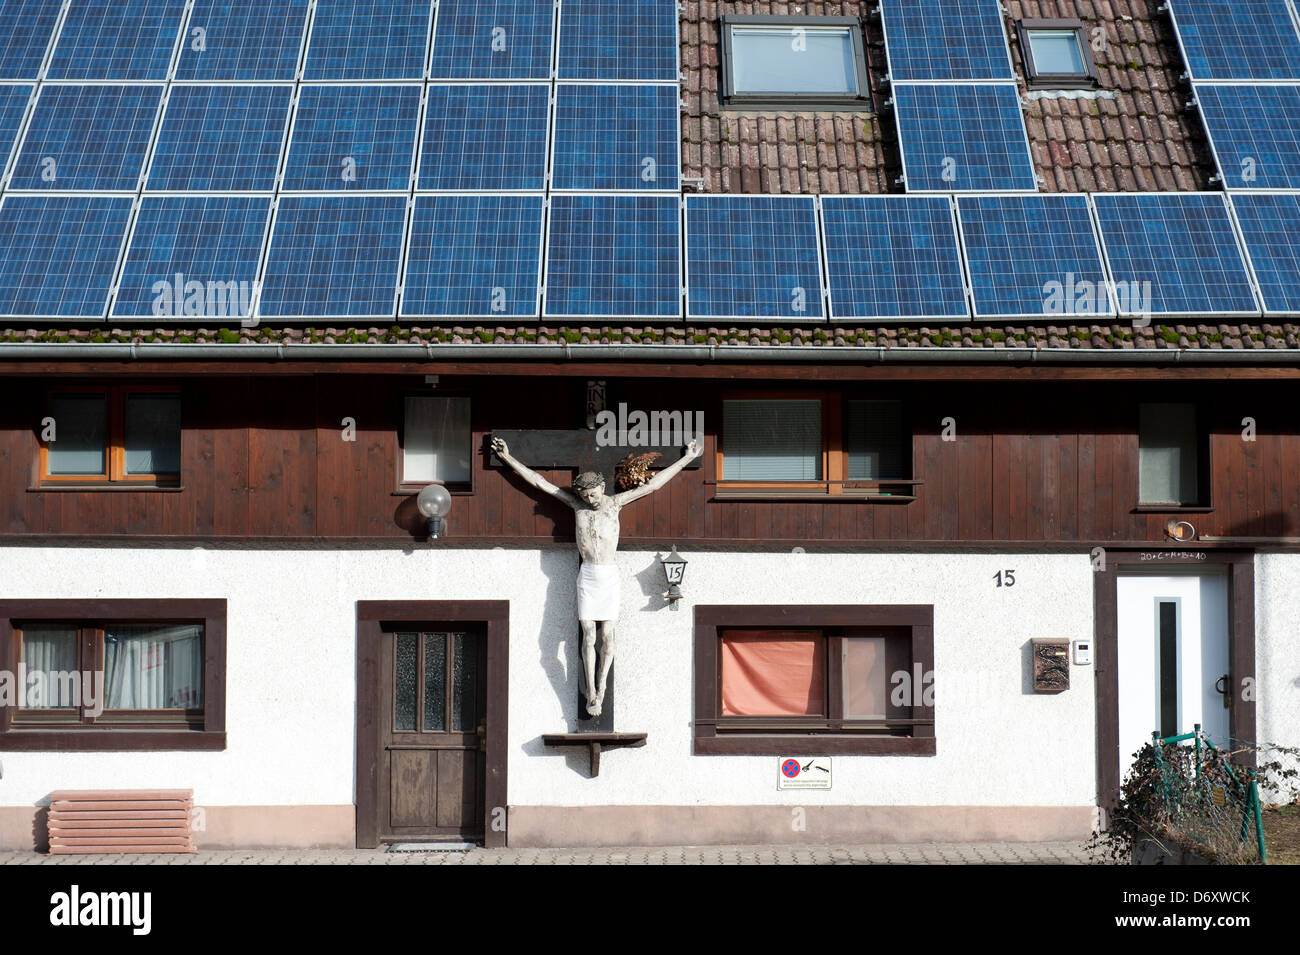 Kirchzarten, Germany, an old crucifix on a house with a modern solar system Stock Photo